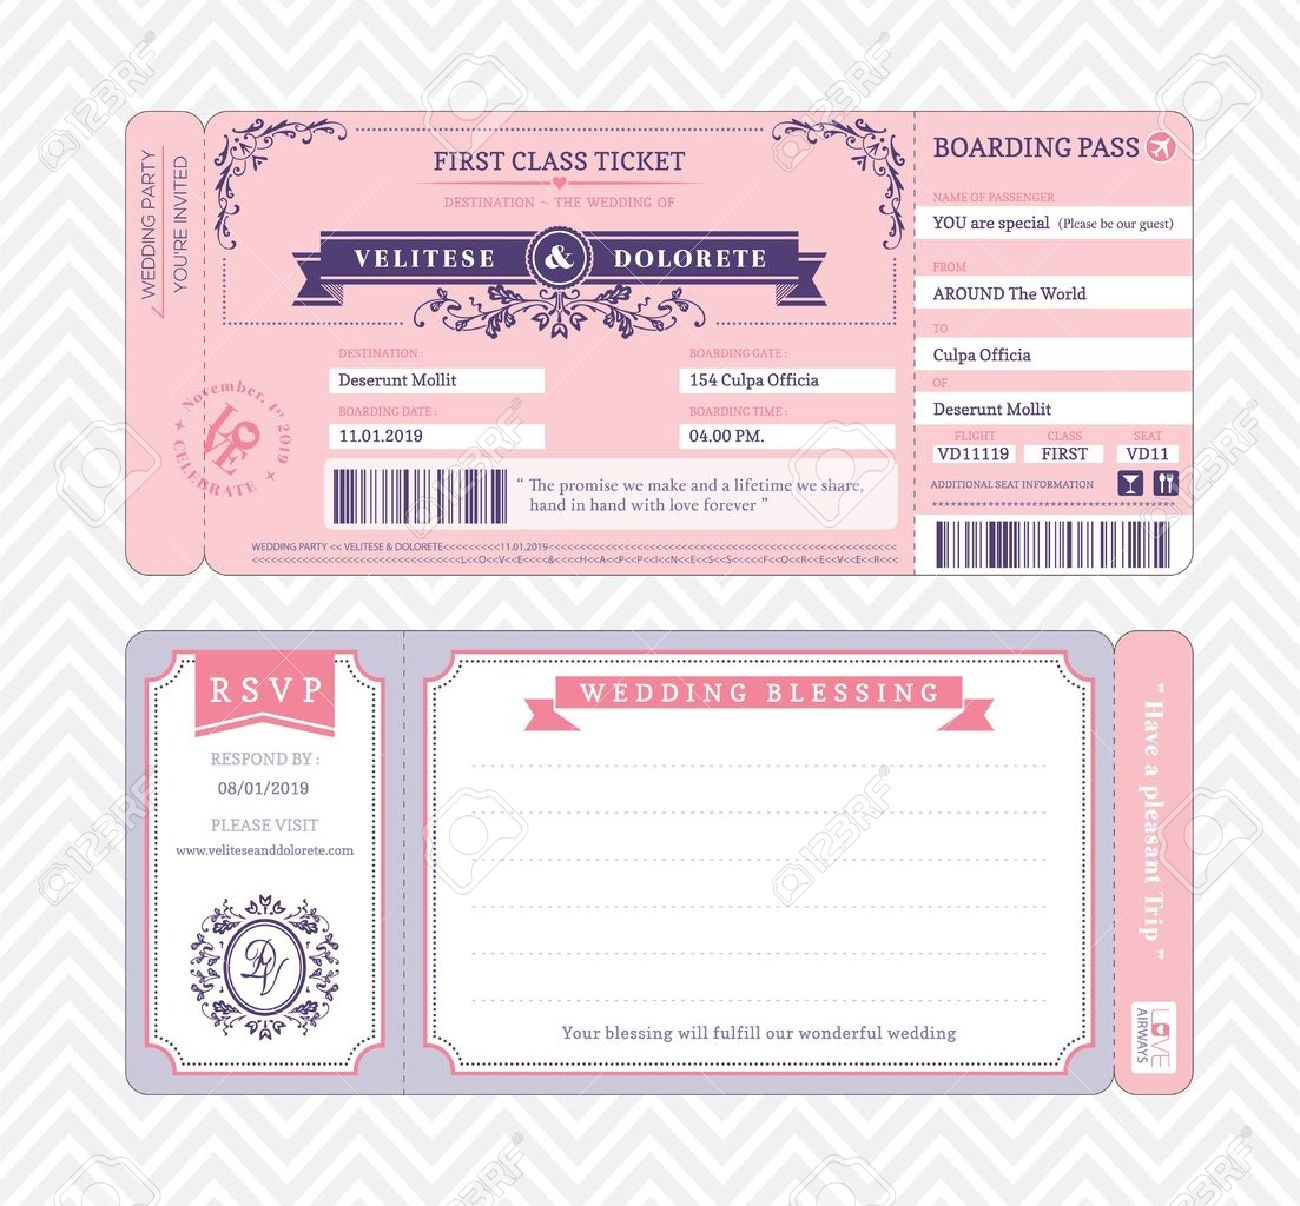 Boarding Pass Ticket Wedding Invitation Template Royalty Free - Free Printable Boarding Pass